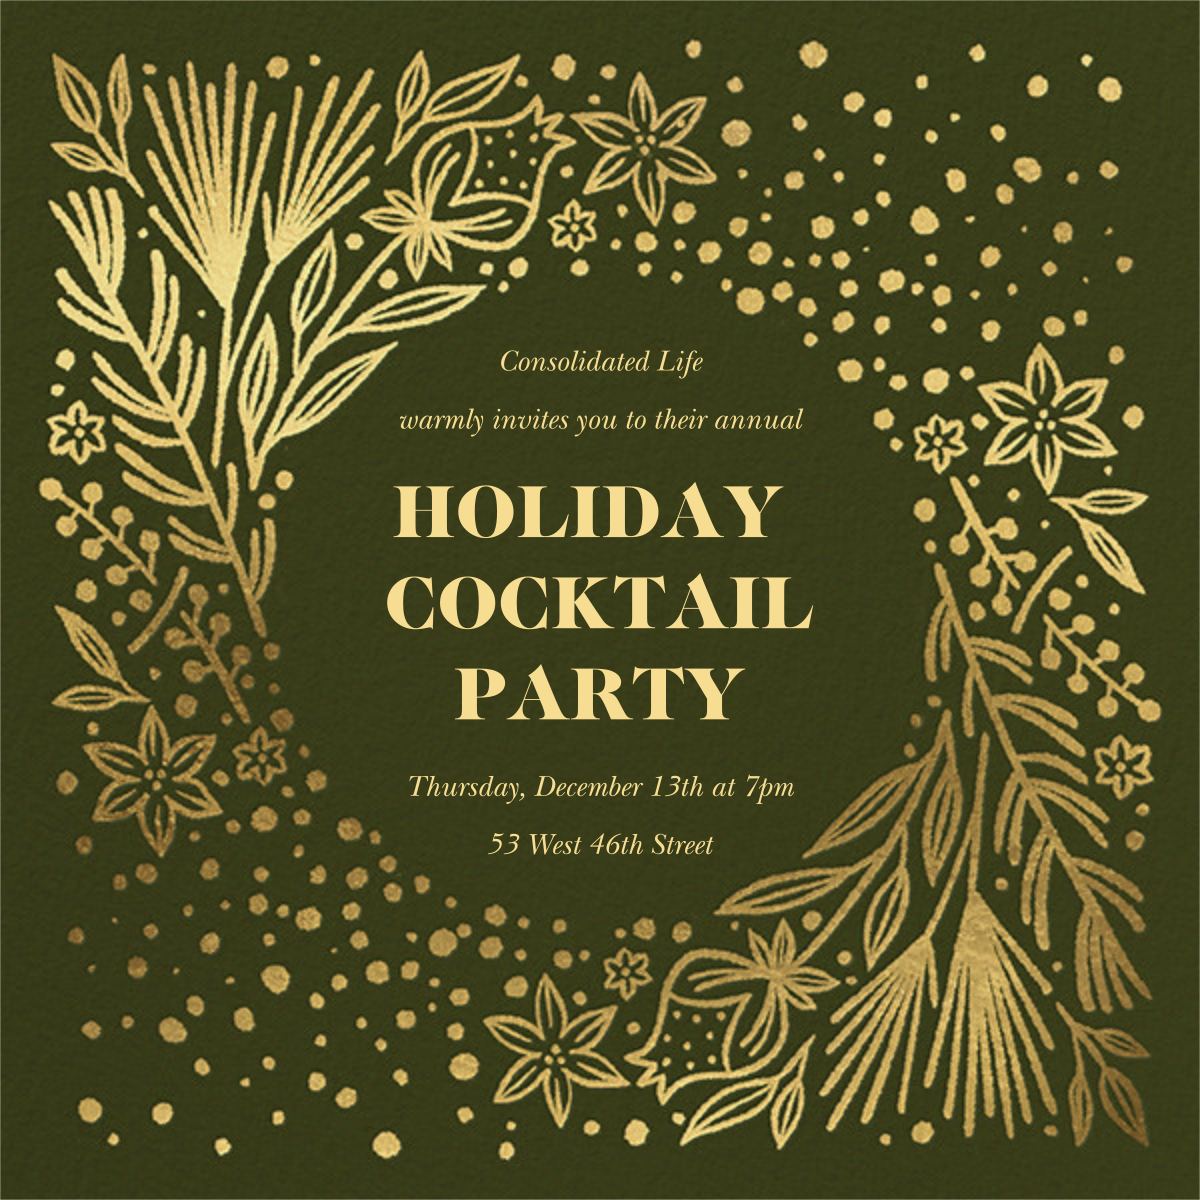 Wild Wild Winter - Paperless Post - Company holiday party